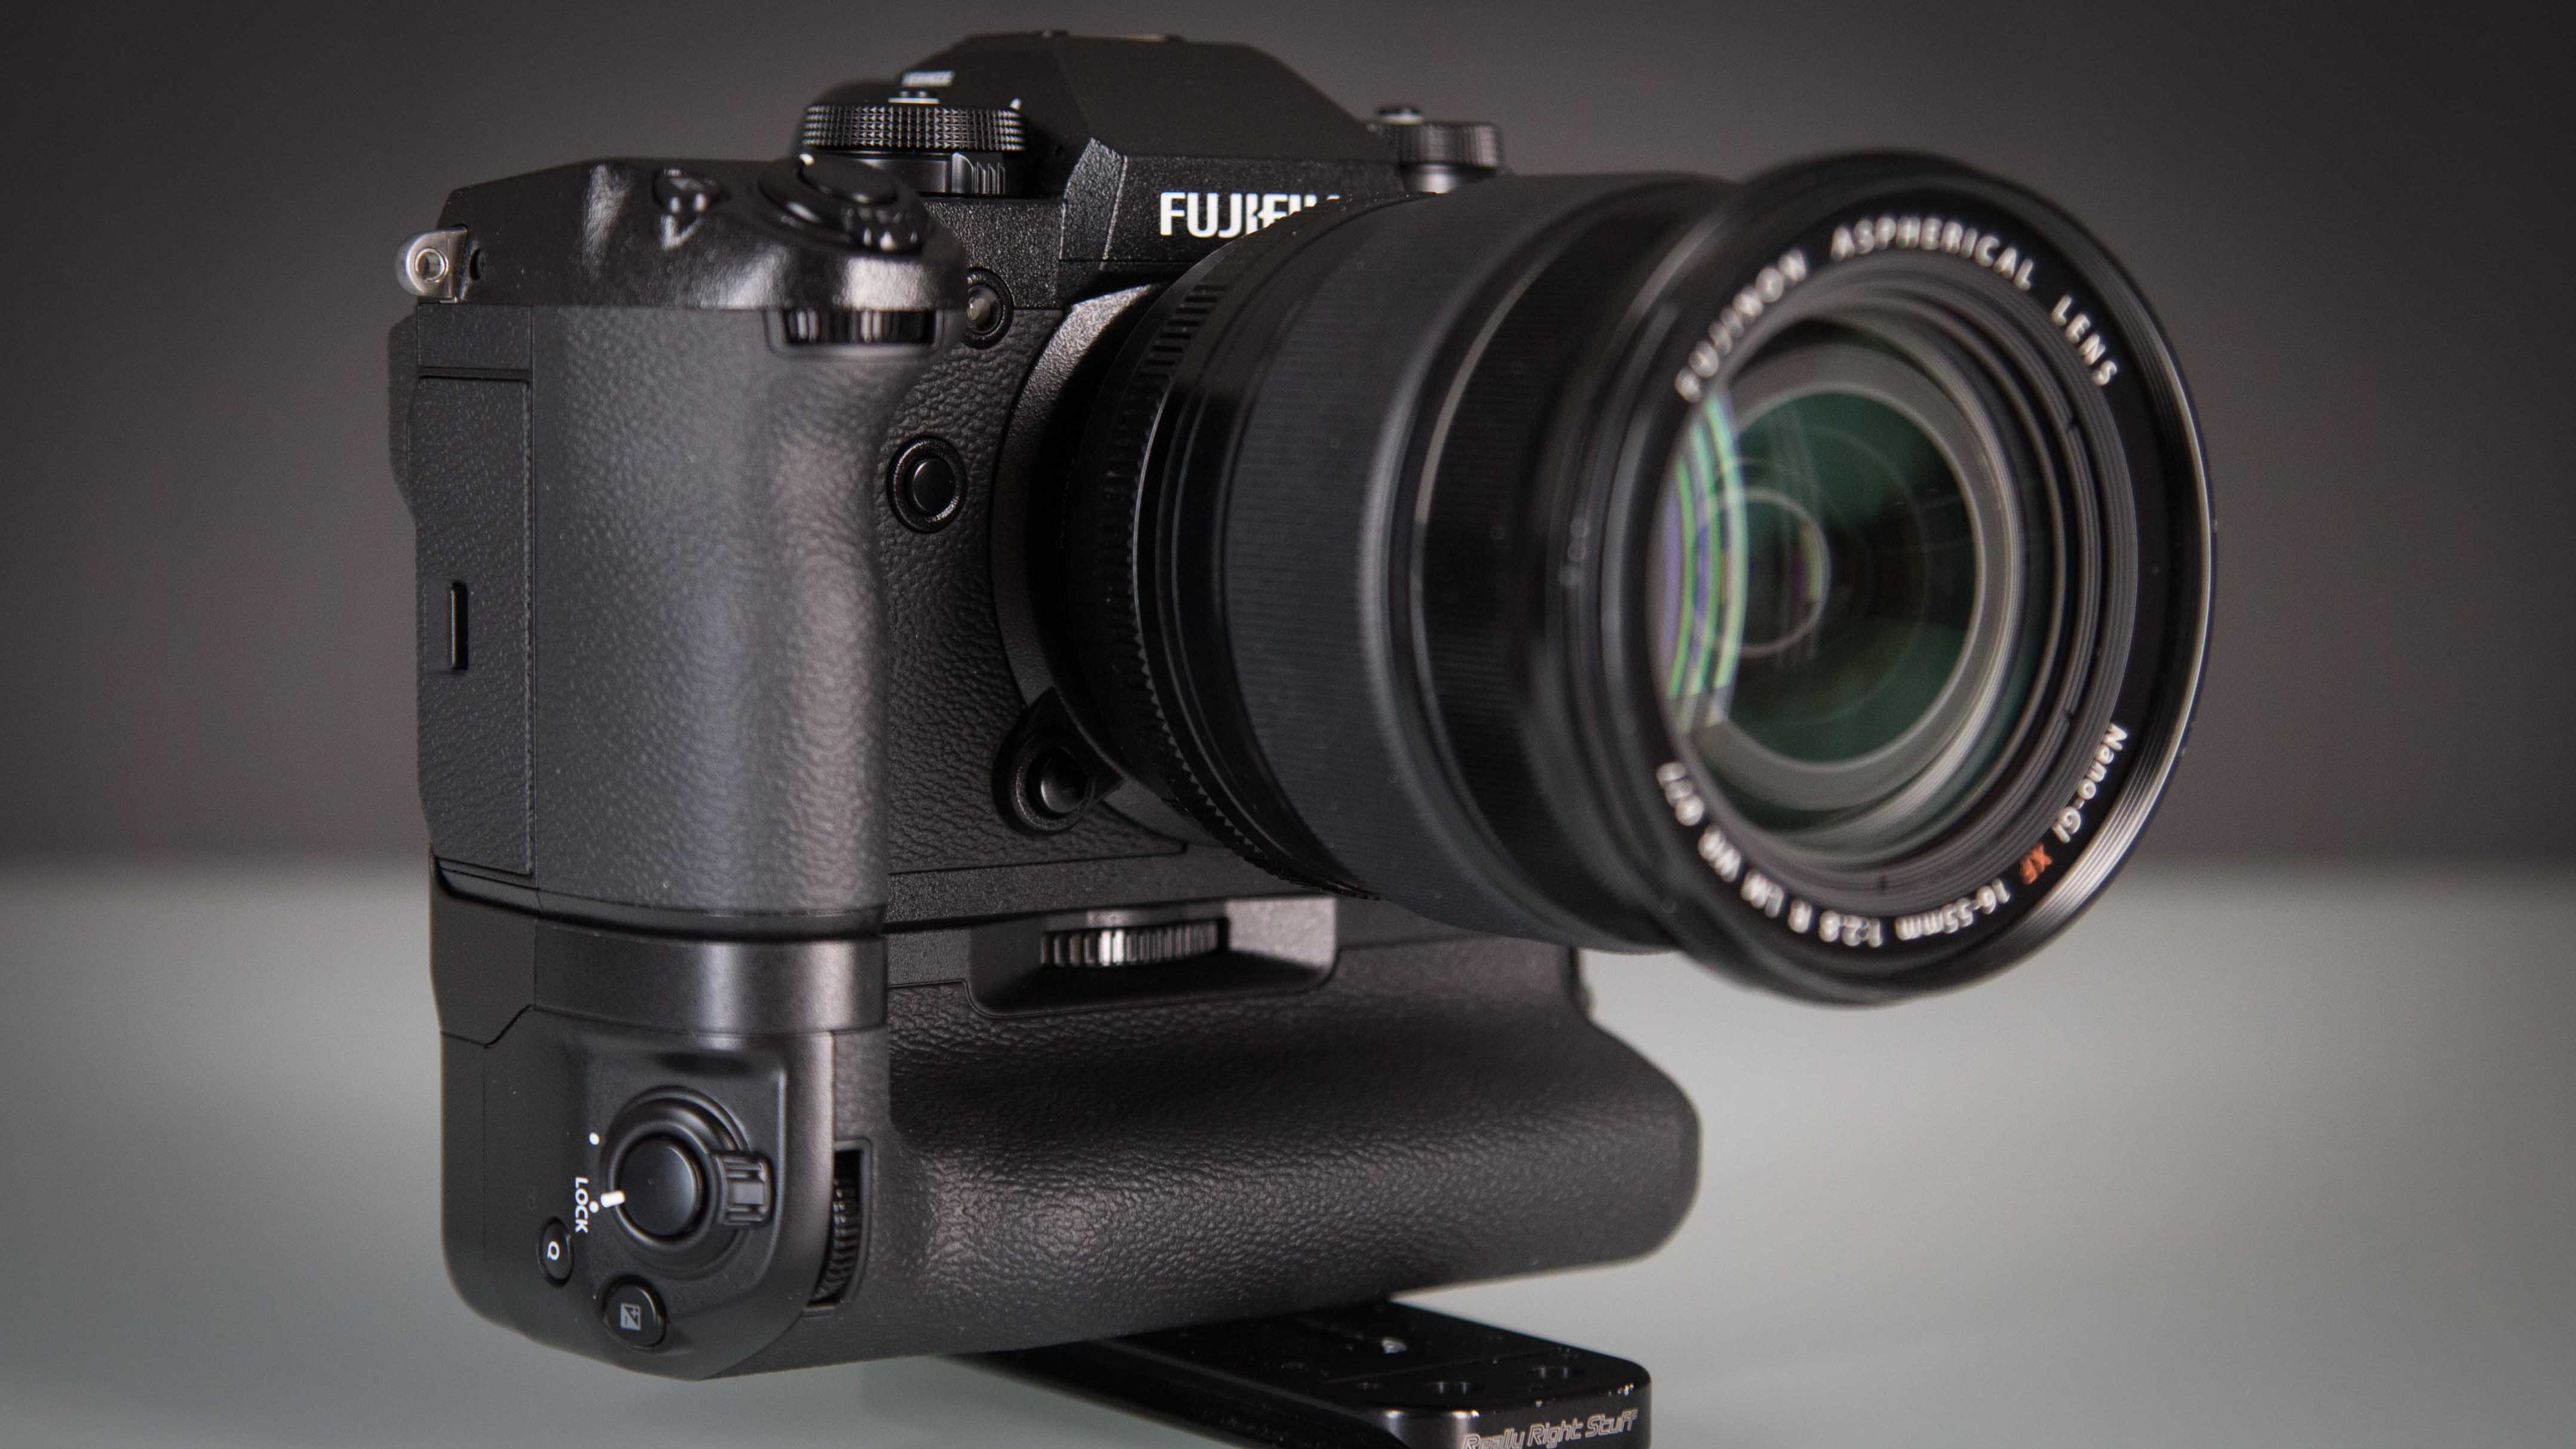 latest firmware update for the fujifilm x-h1